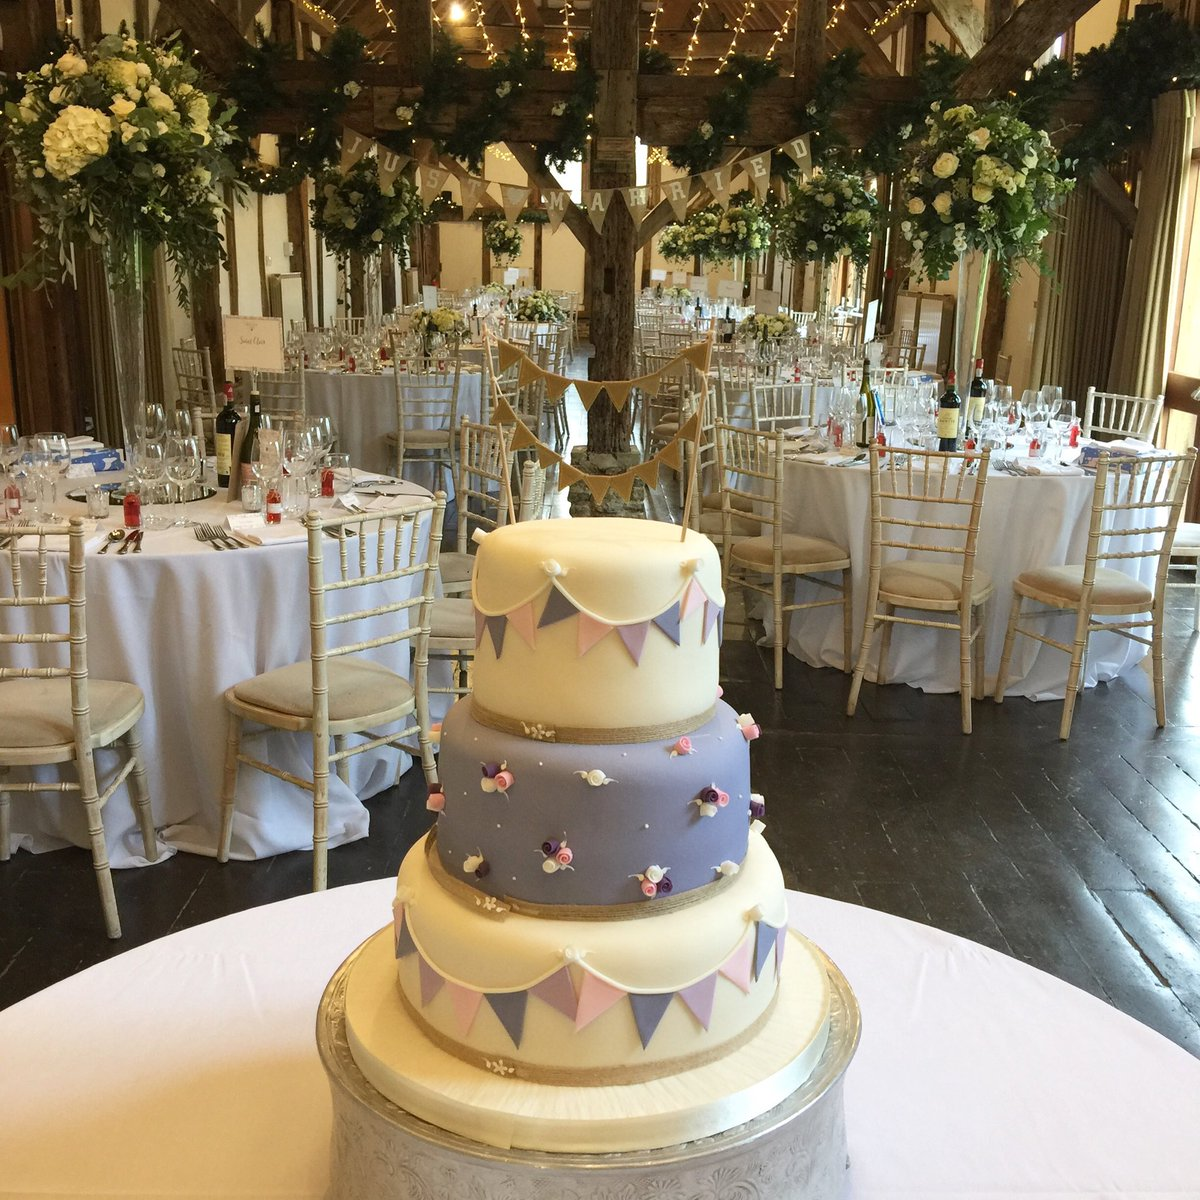 Our first #Christmas #wedding this year looked amazing! @Loseleyevents @OakwoodEventsUK @CoralandSlate